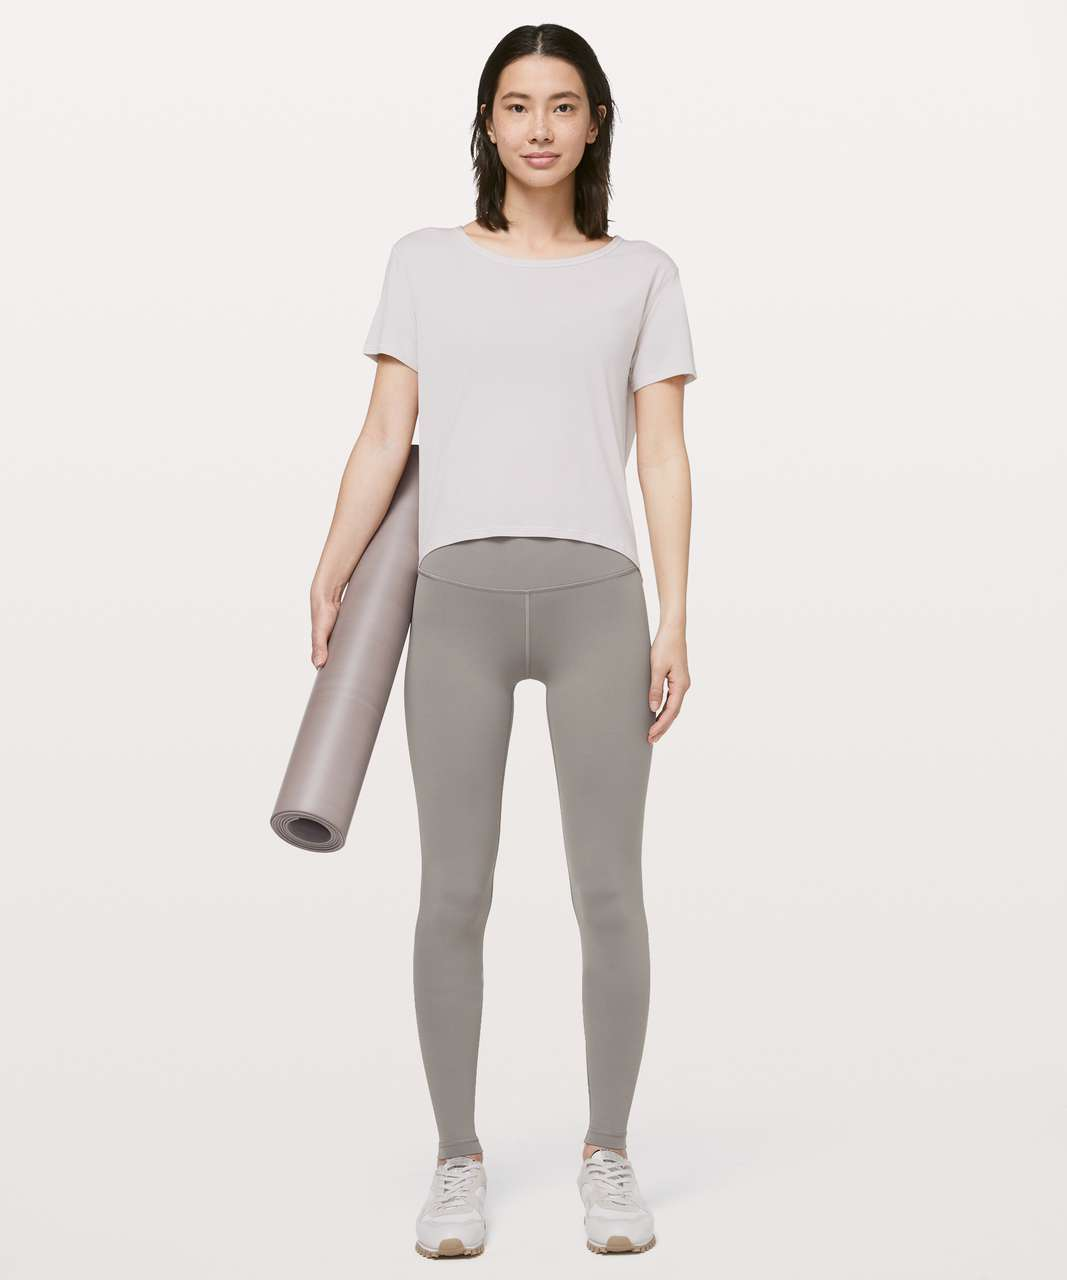 "Lululemon Wunder Under High-Rise Tight 31"" *Full-On Luxtreme - Carbon Dust"